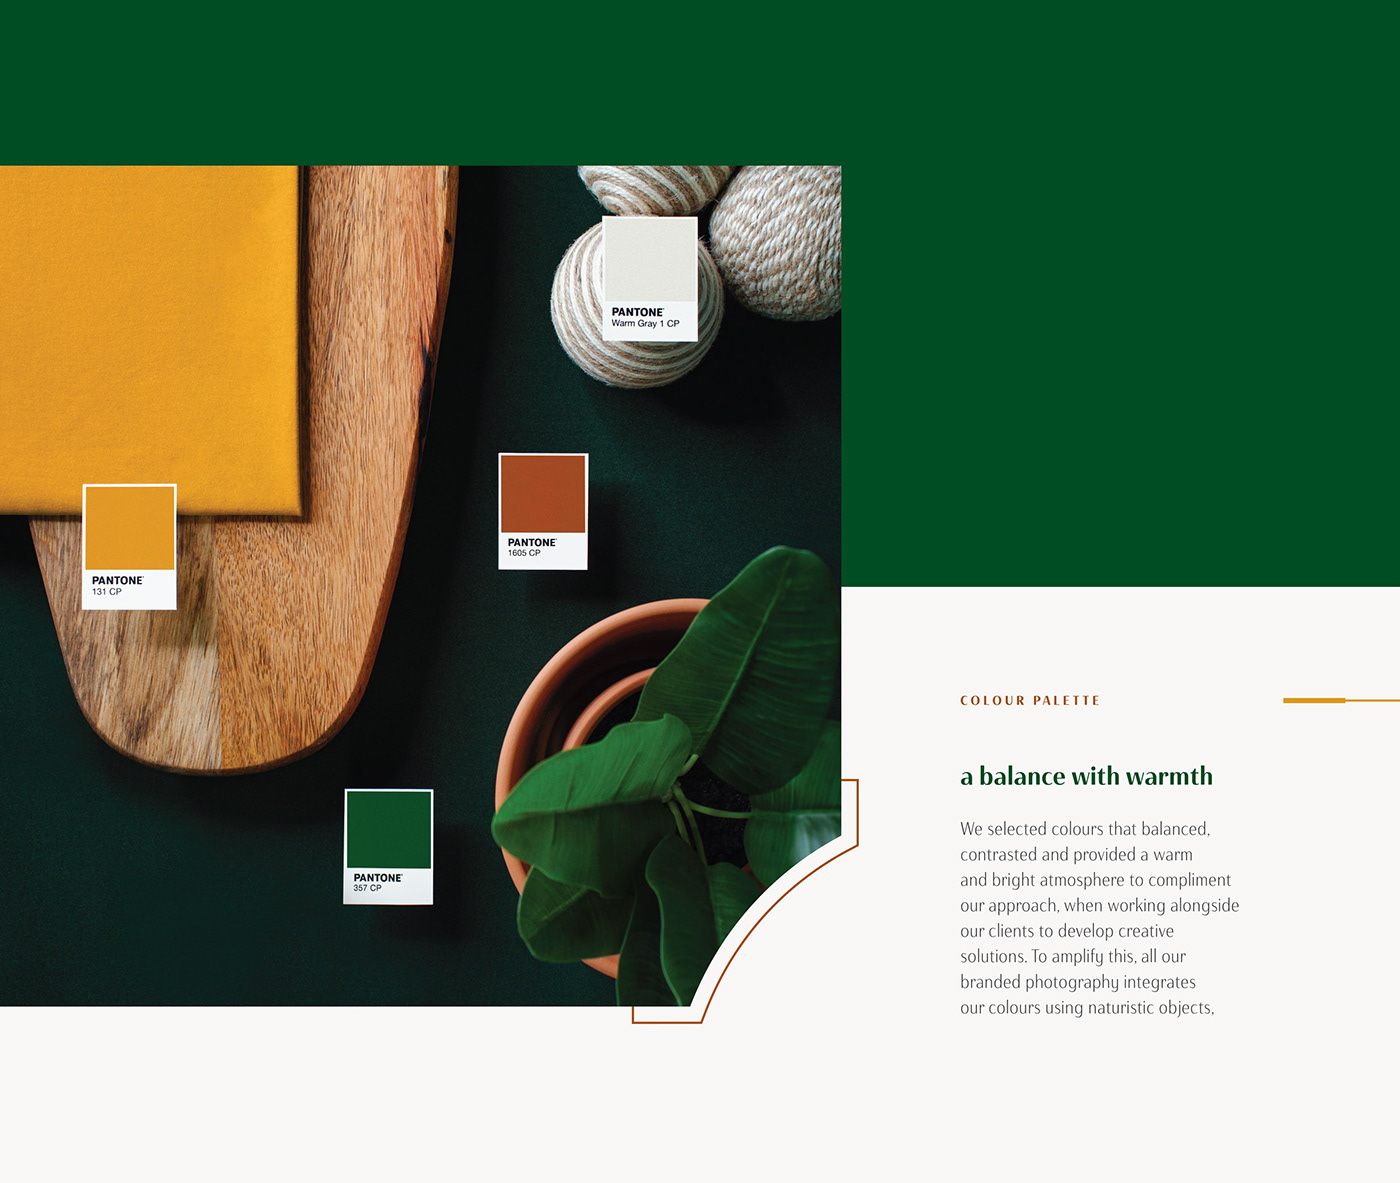 The complete Foster Creative colour palette displayed using natural objects.